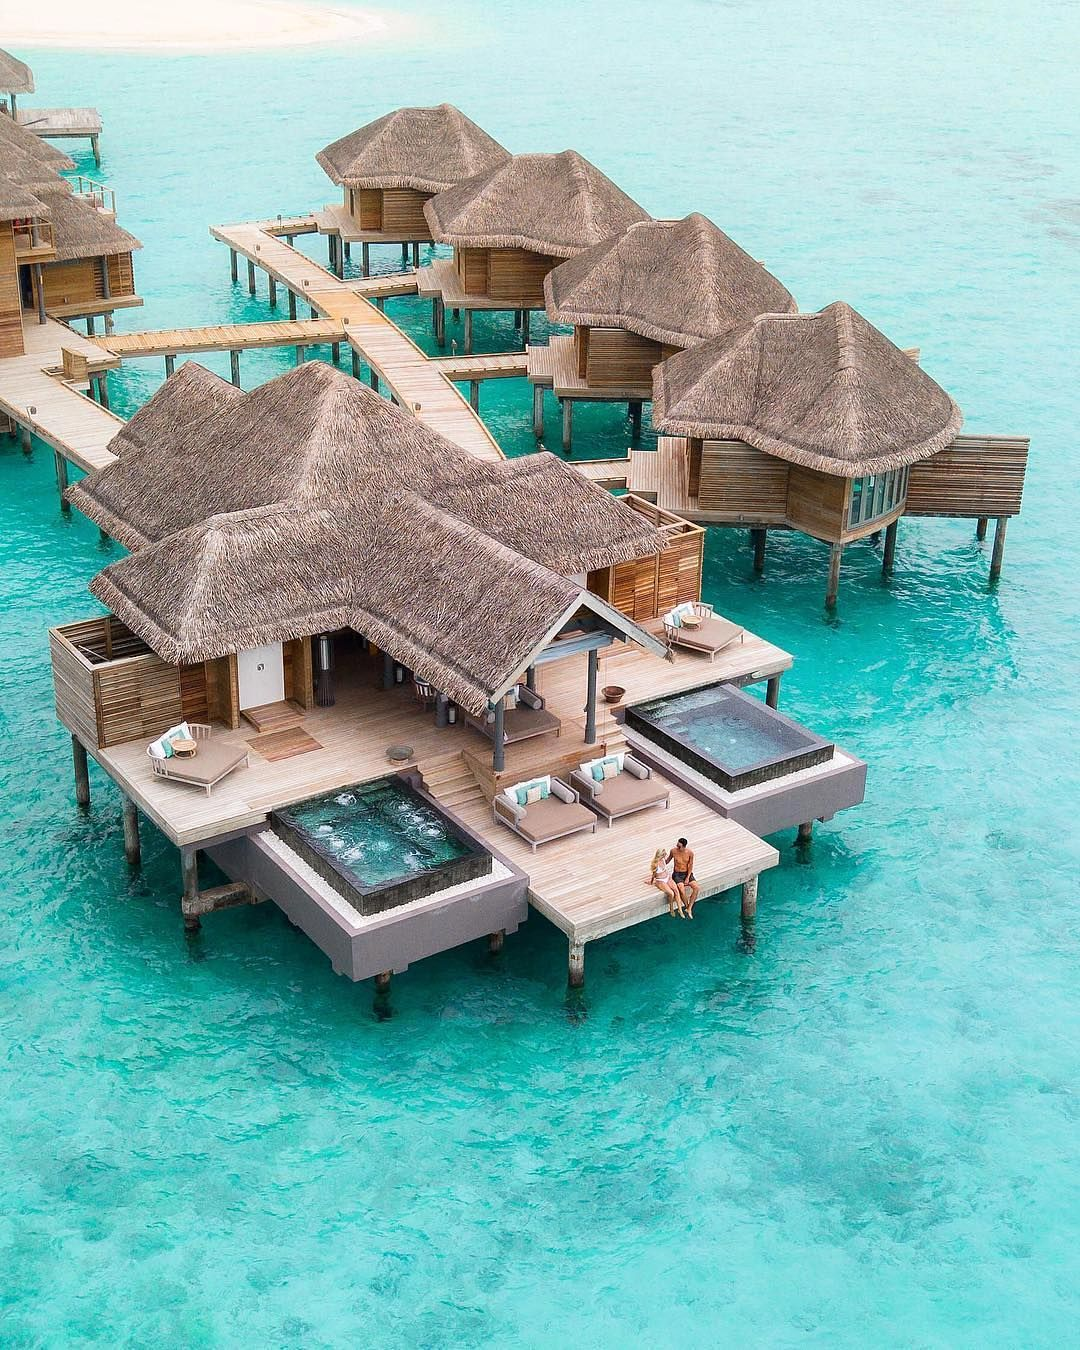 My Fellow Travelers I Just Found This Deal 5 Nights In Maldives In A 5 Star Resort For 595 Including Tax On This New Bo Luxury Travel Vacation Maldives